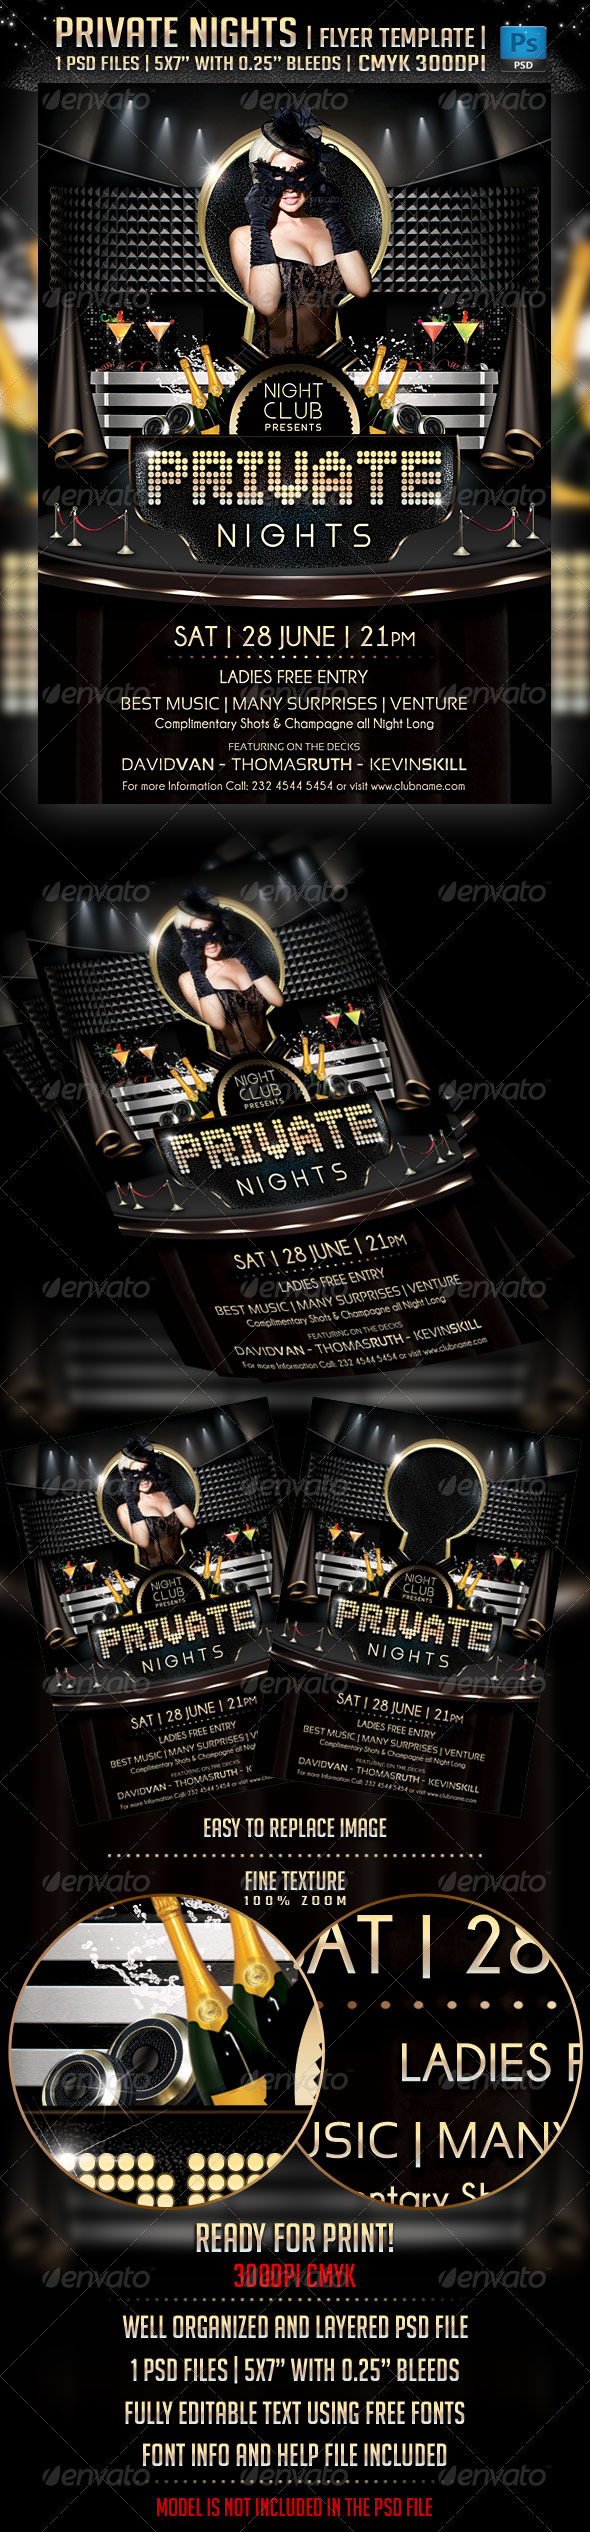 Private Nights Flyer Template - Flyers Print Templates